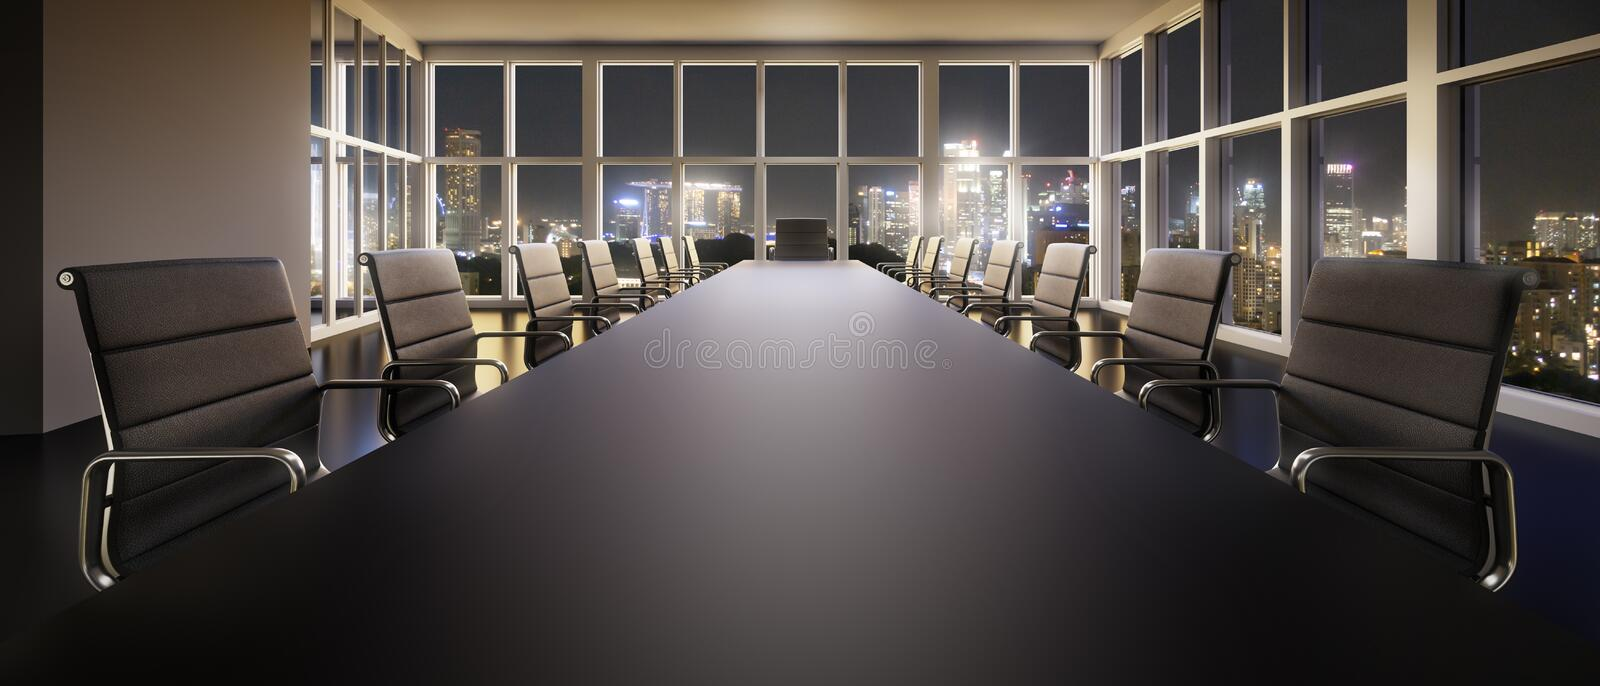 Stylish meeting room in a high rise building royalty free illustration